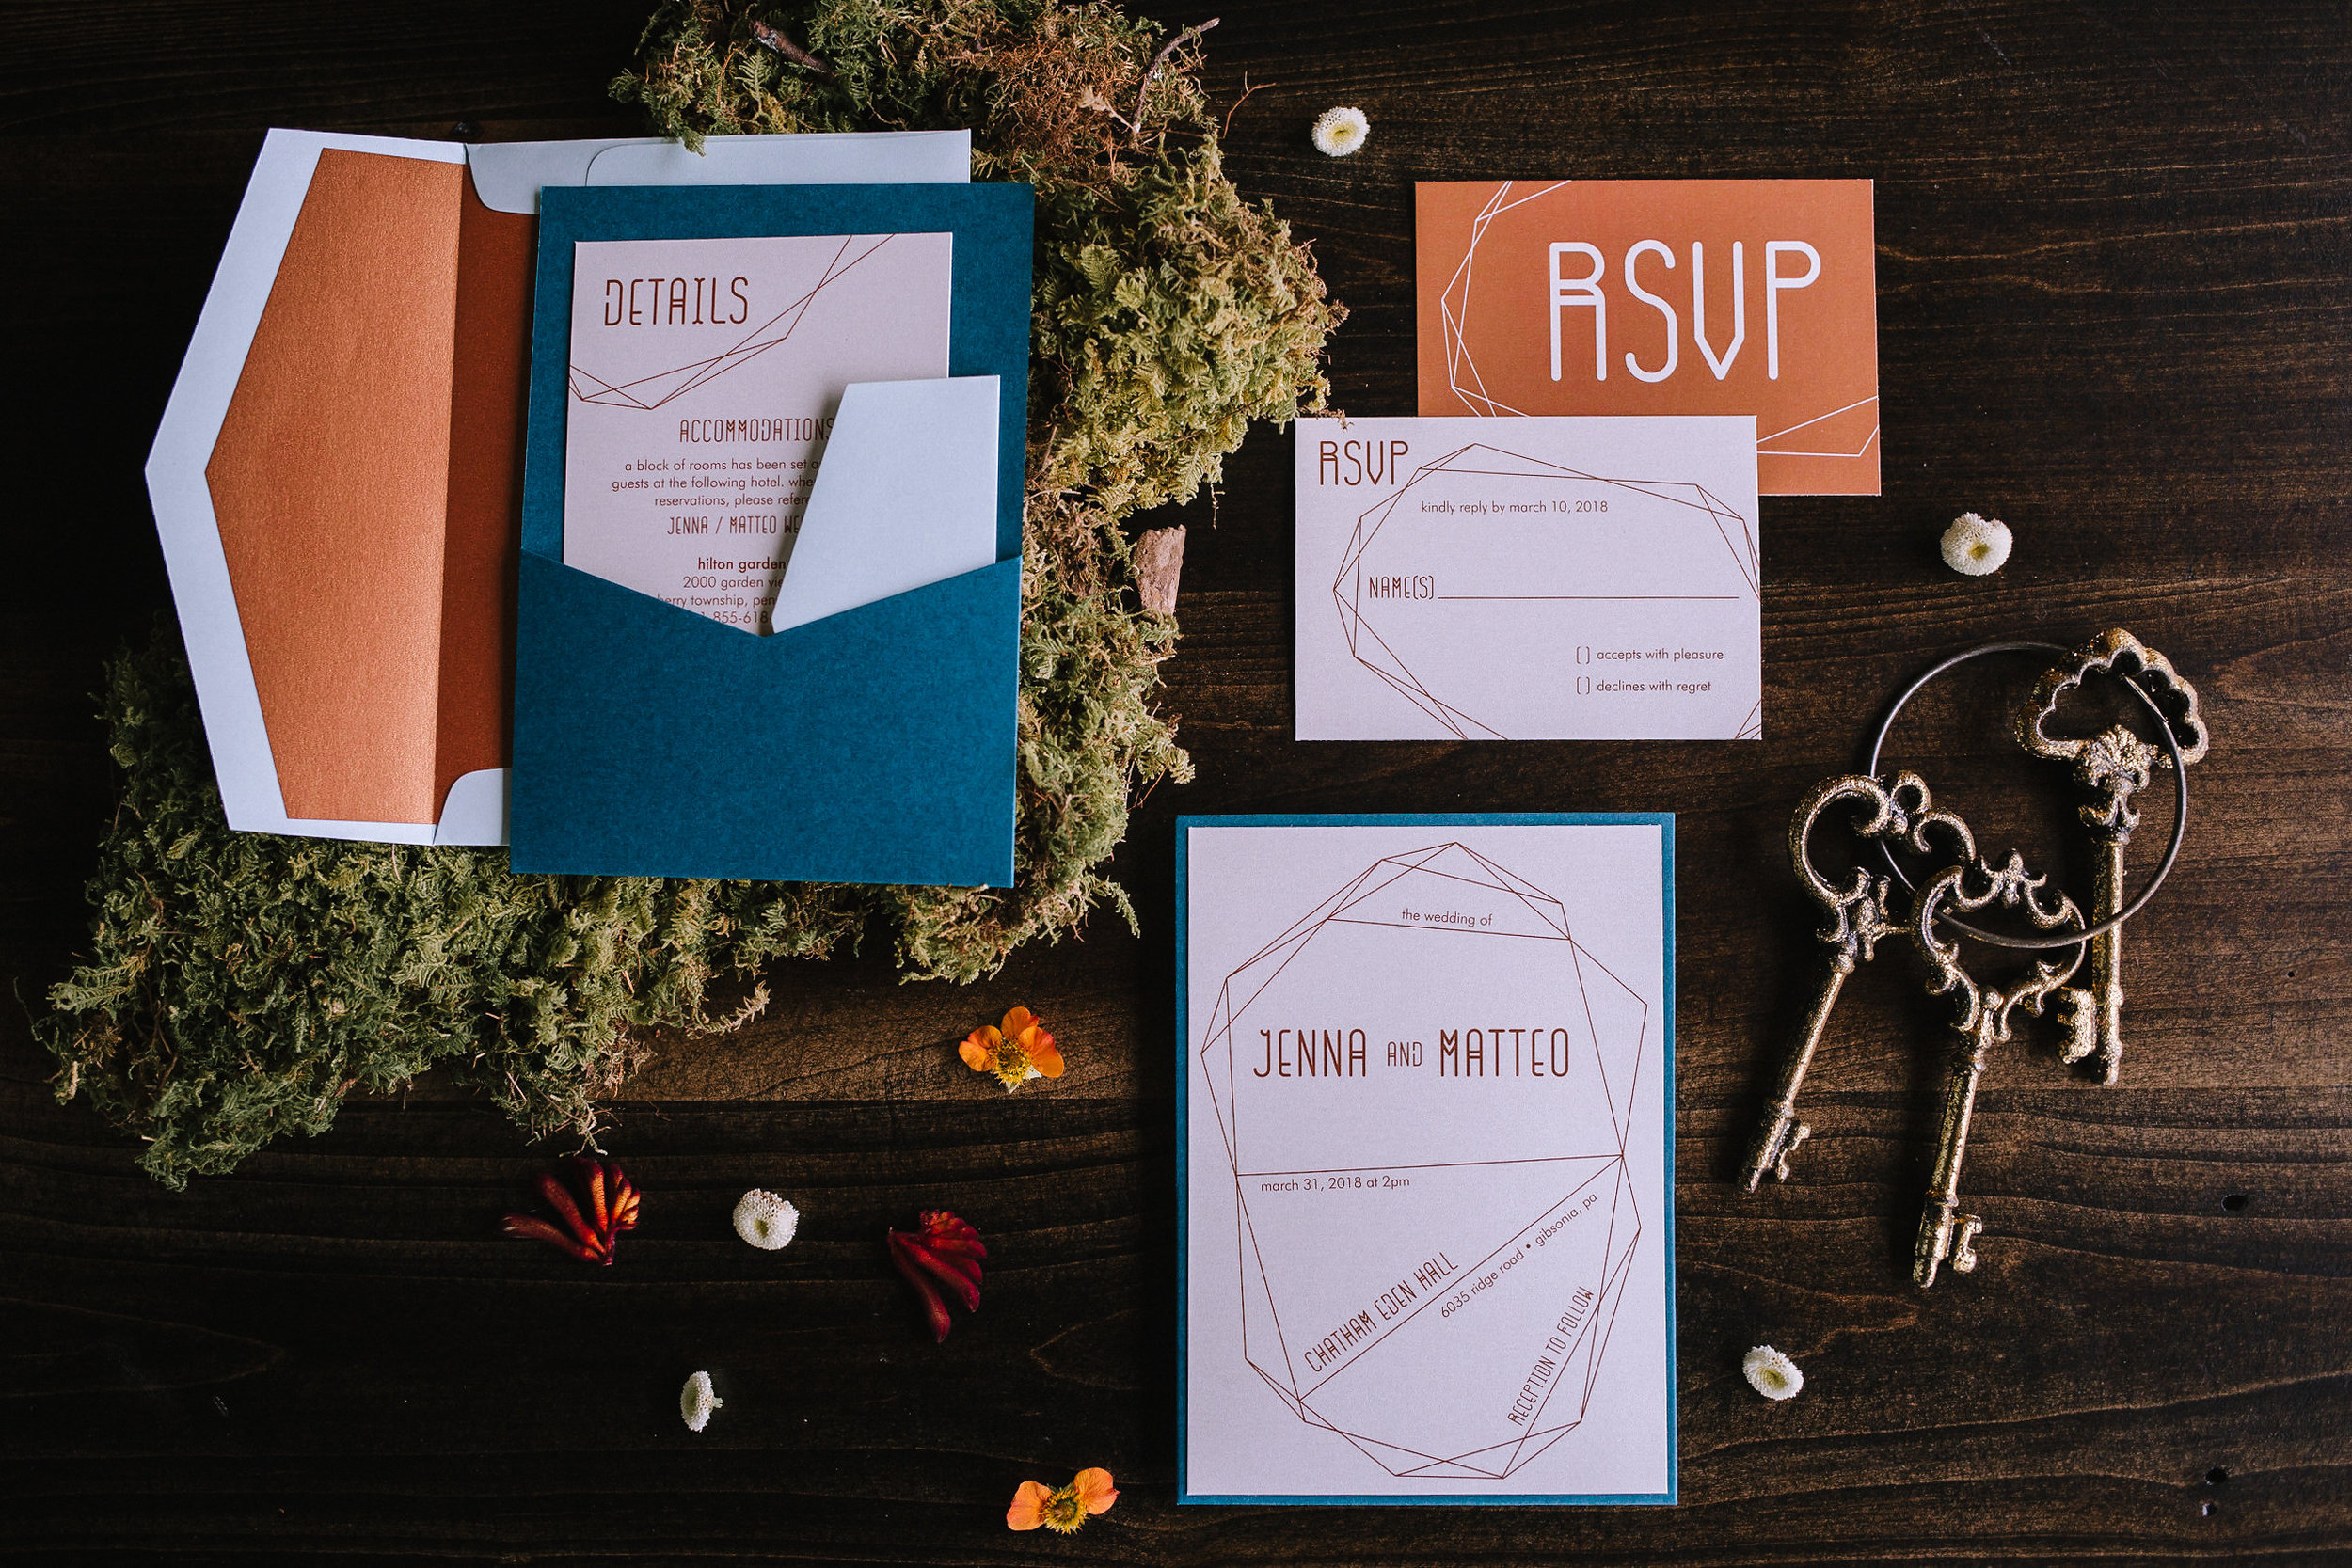 Teal and copper wedding invitations for fall vintage boho styled shoot designed by exhale events. Get inspired by these gorgeous wedding details at exhale-events.com!